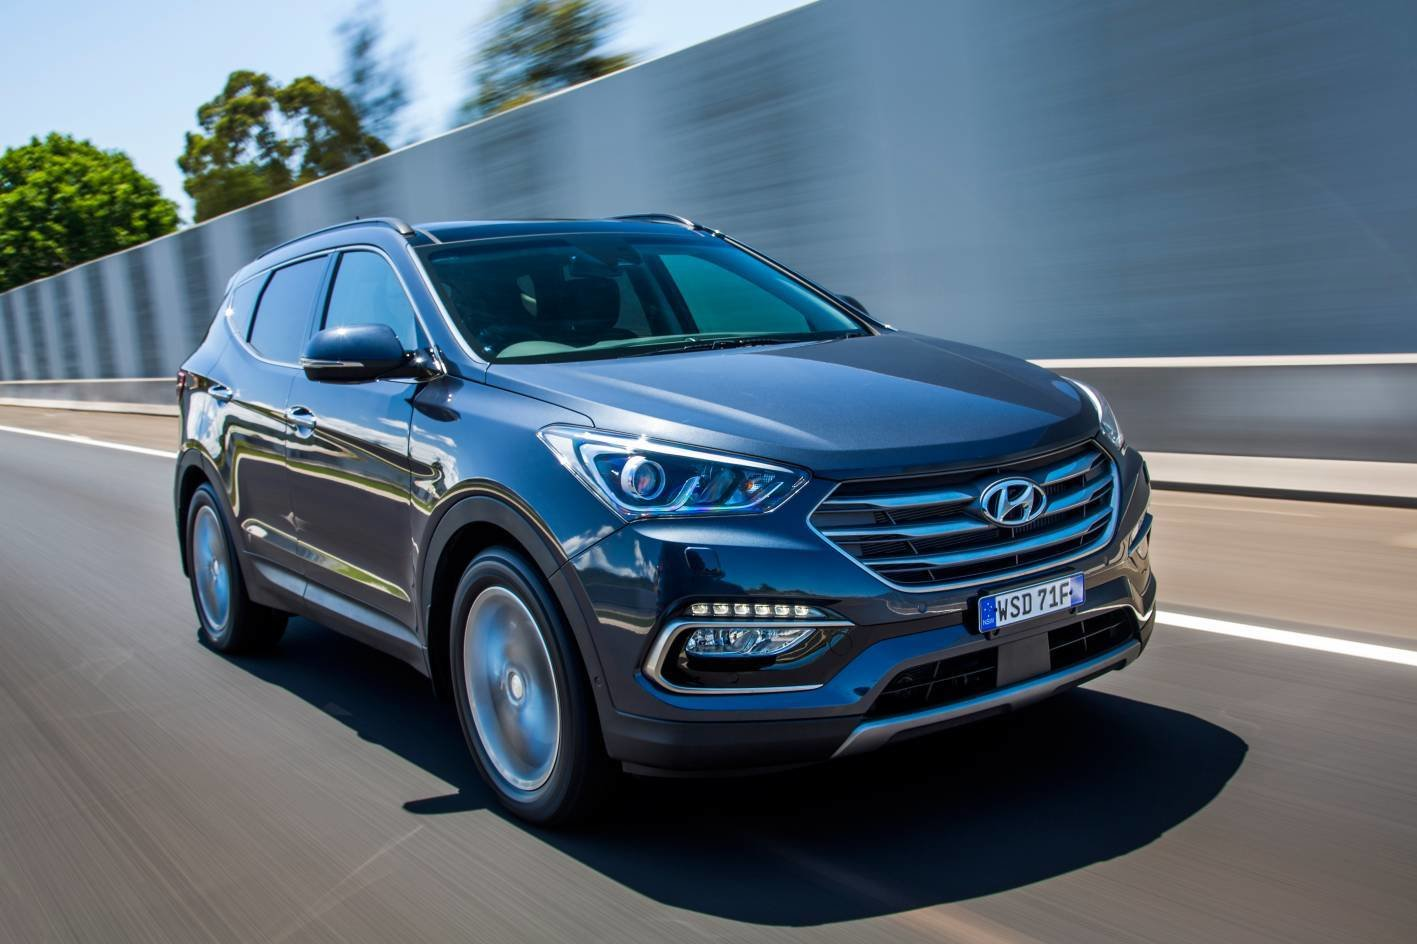 New Should I Buy A Hyundai Santa Fe 7 Seater Suv — Auto On This Month